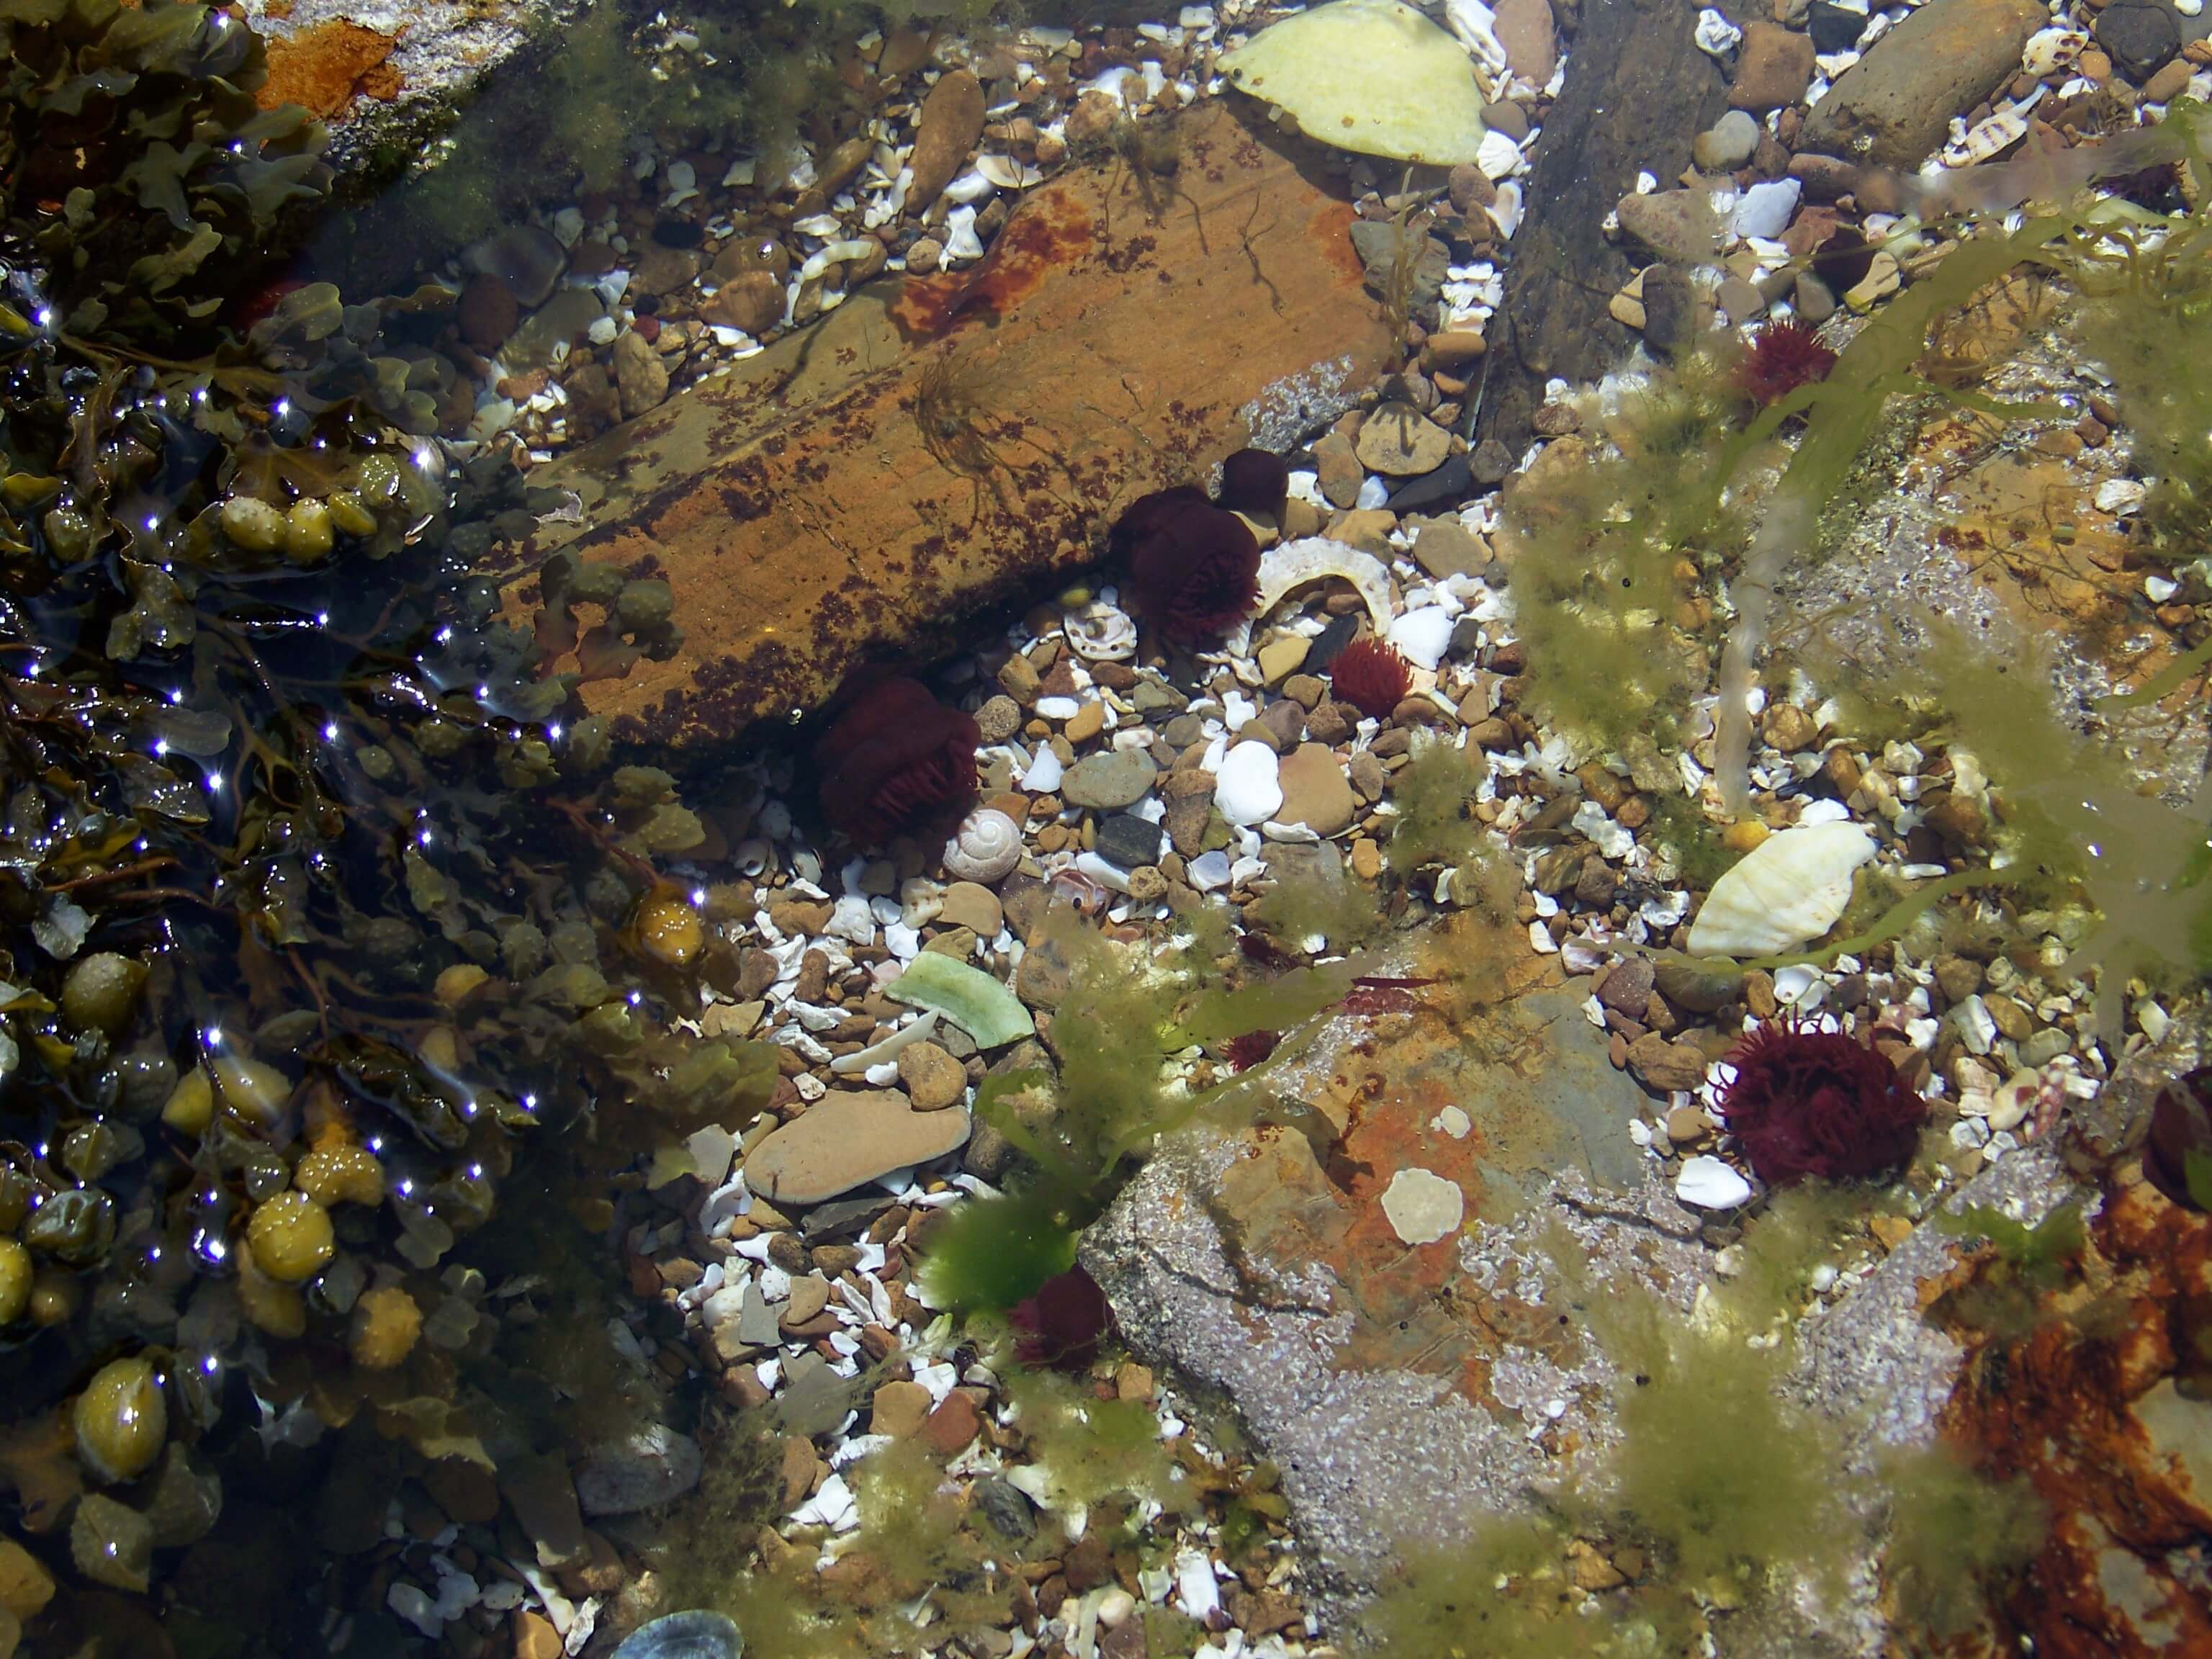 Sea anemones in a tidal pool, Orkney